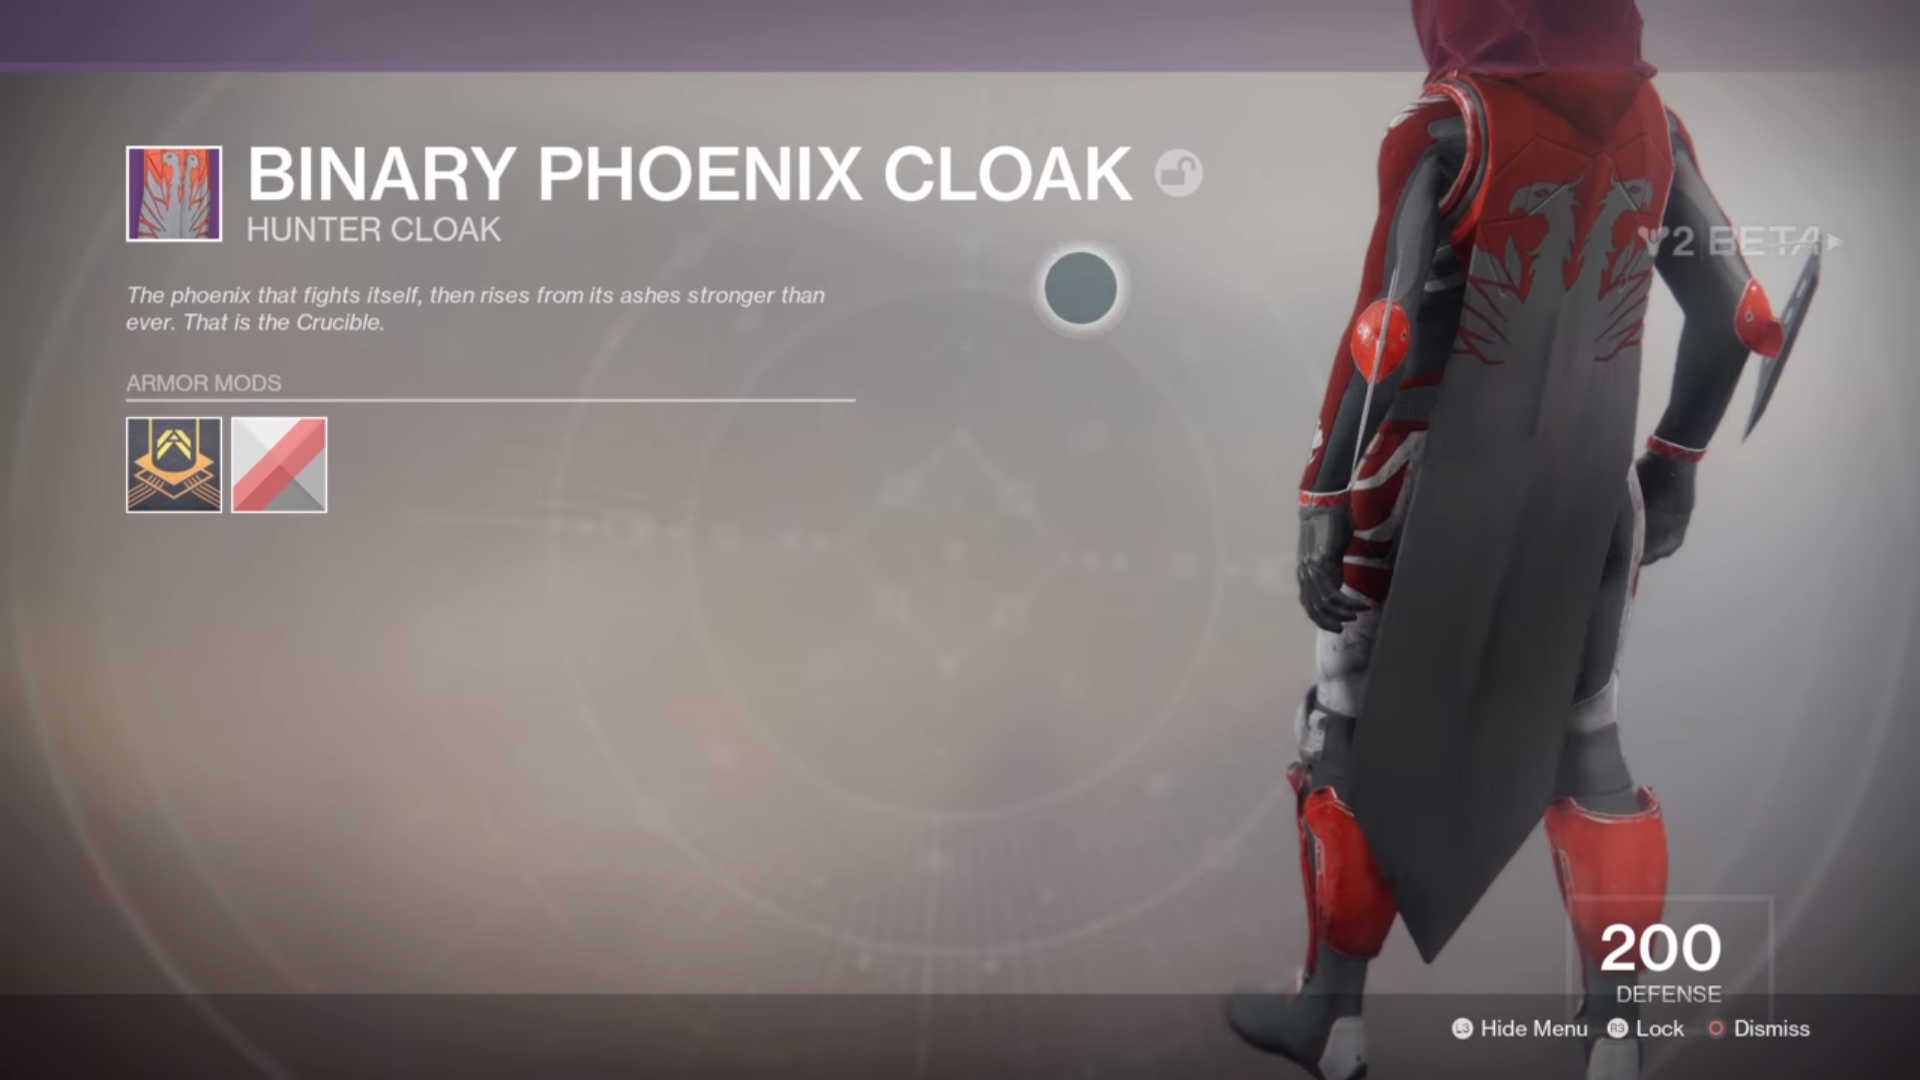 The Took Offense Set Is A Drop From Strike Intrinsic Perk Heavy Hunter Armour Applied Across And Offers Improved Resilience